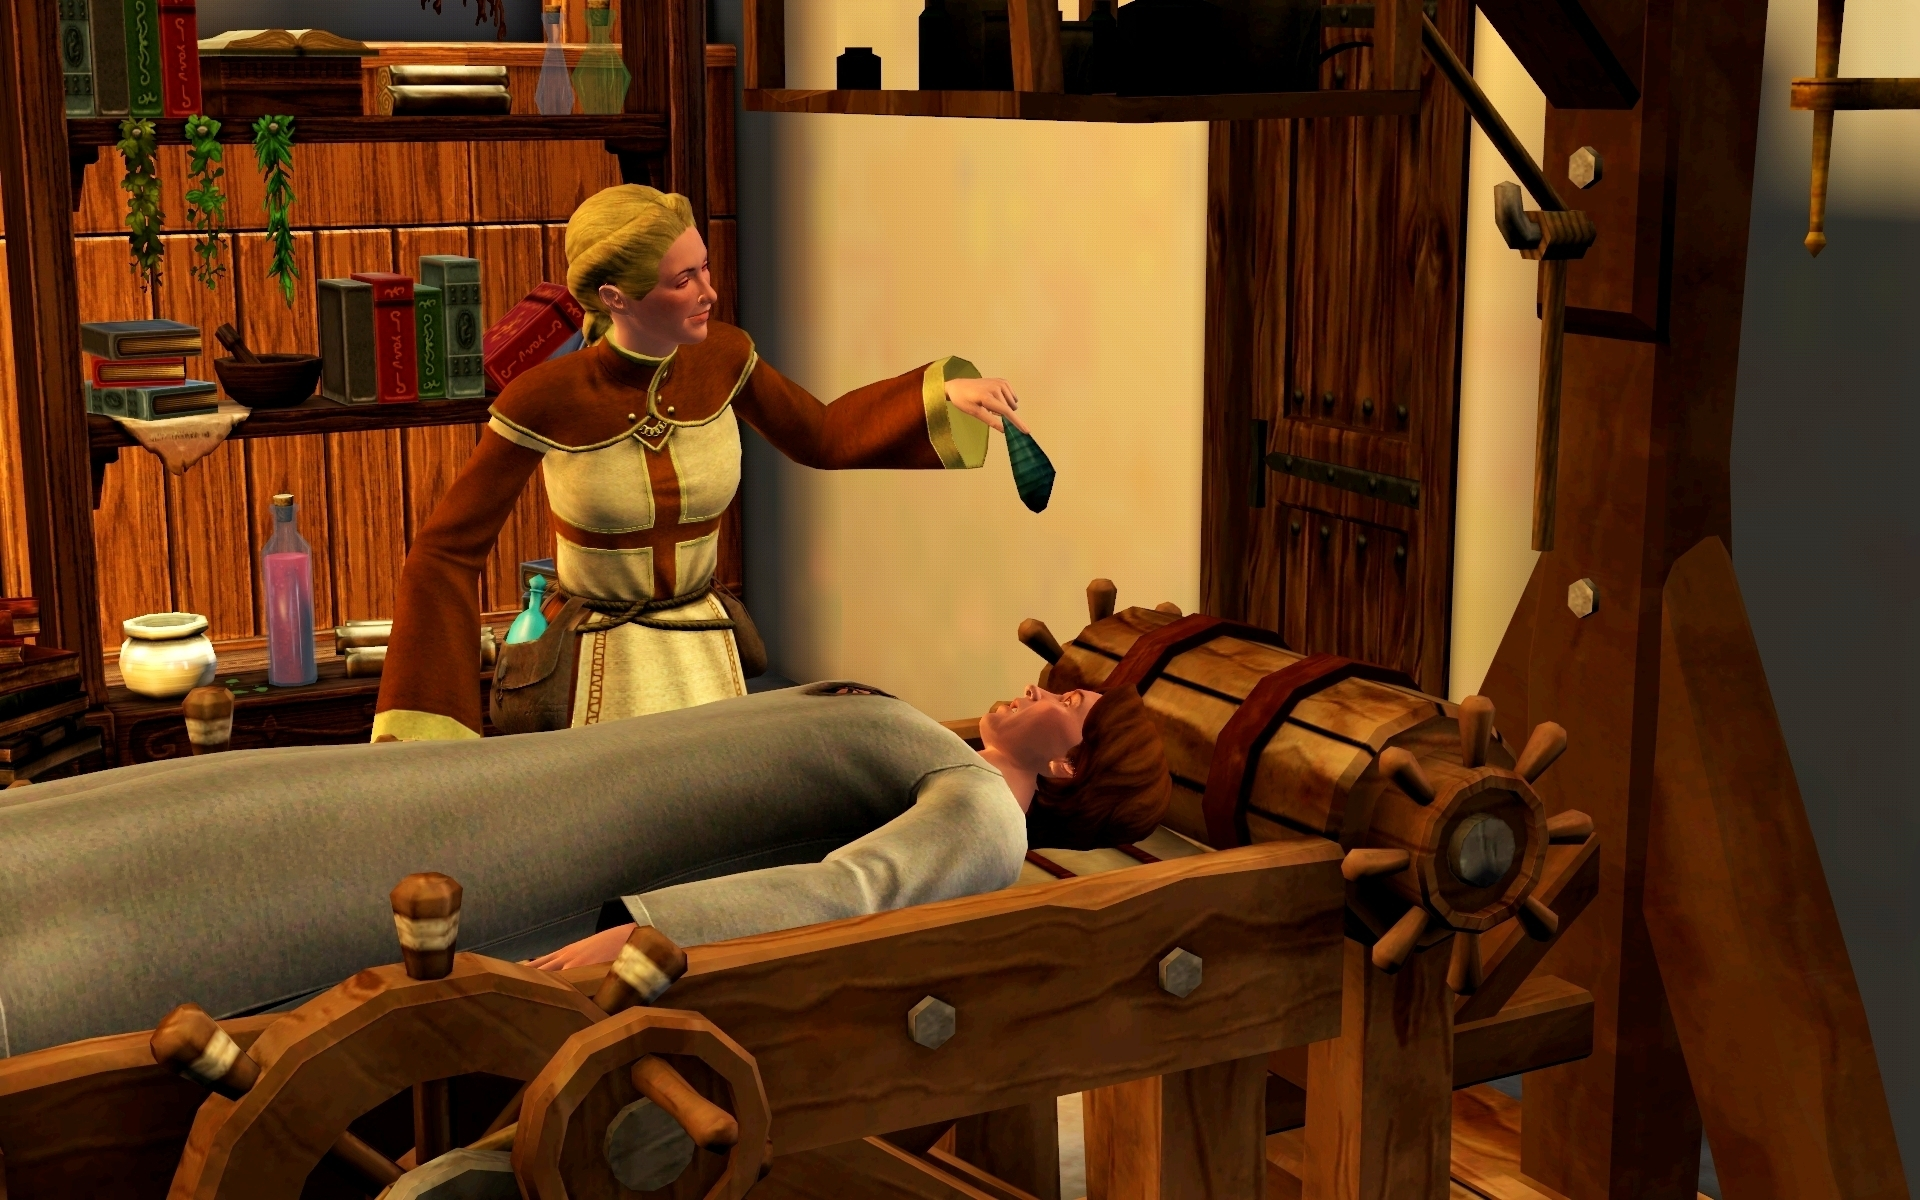 The sims medieval nude patch torrent xxx girl